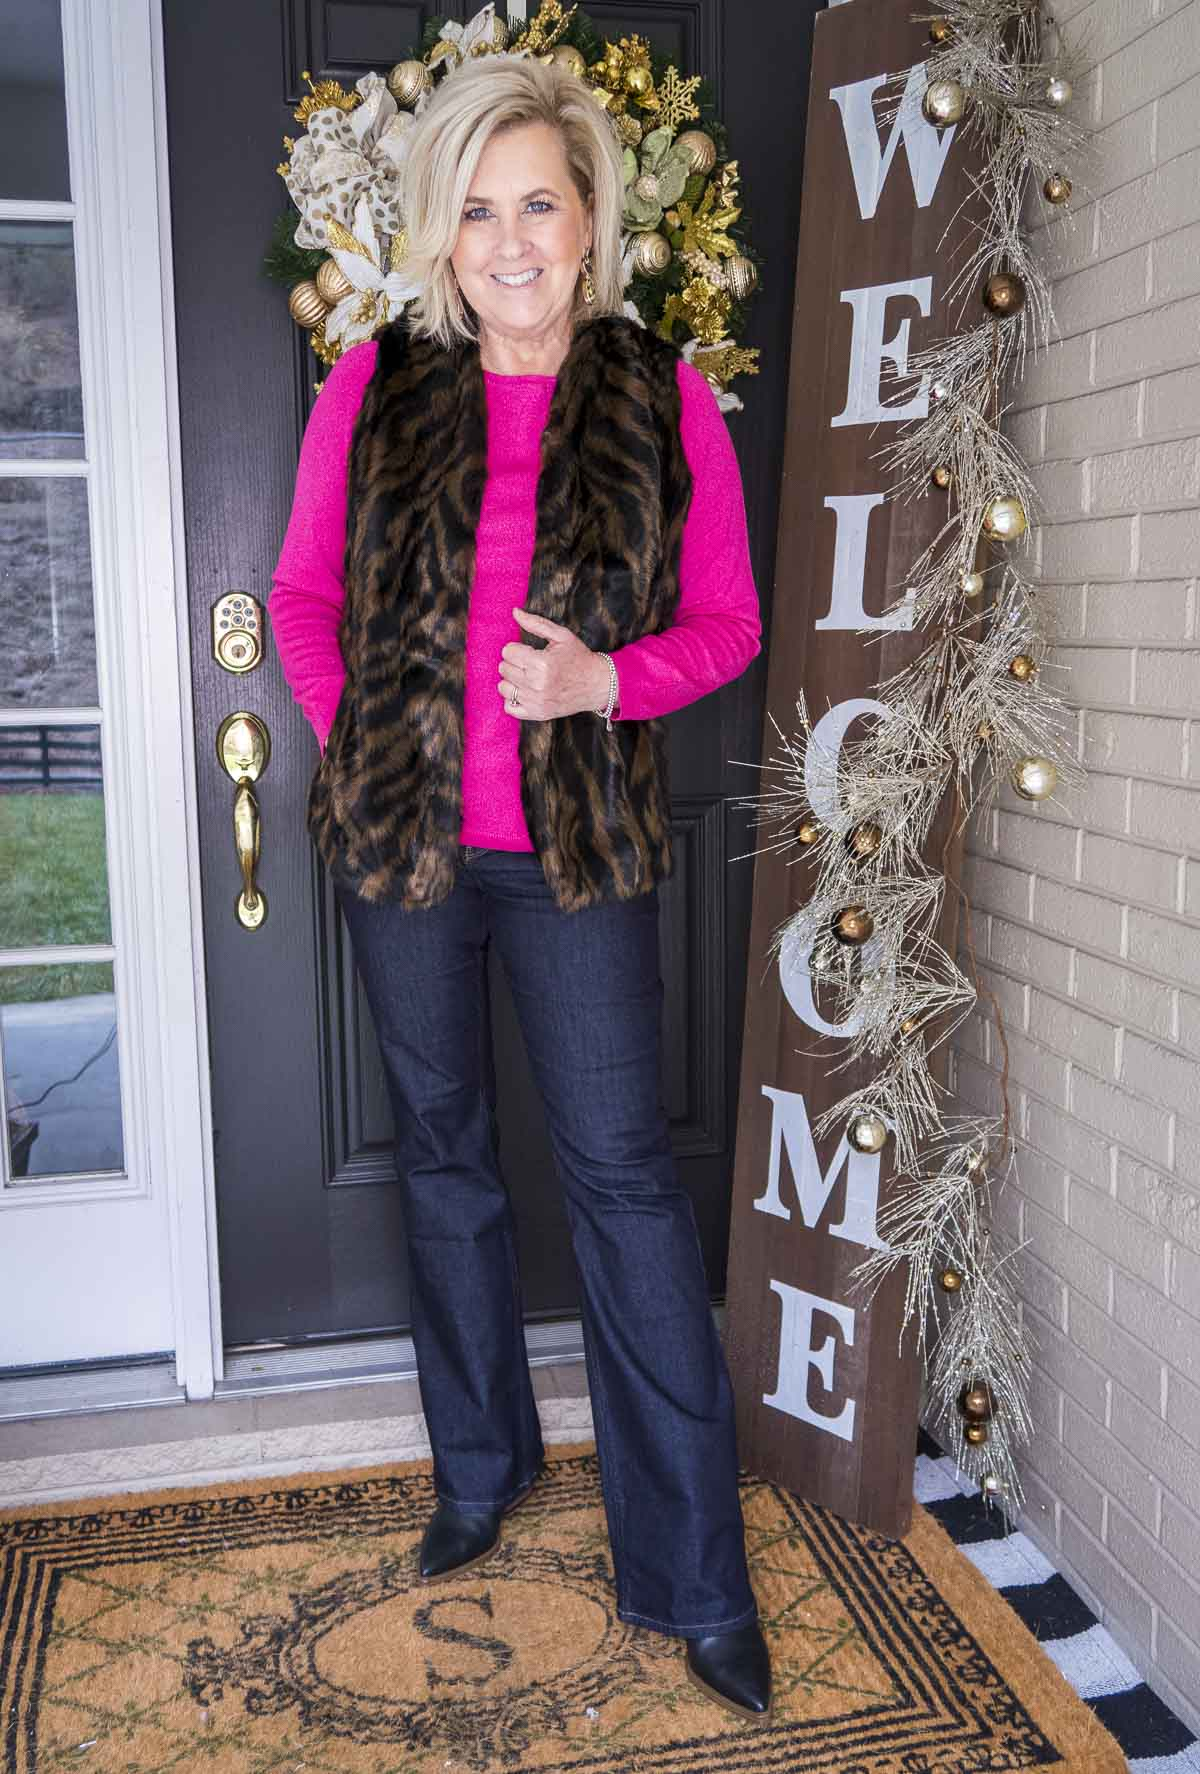 Over 40 Fashion Blogger 50 Is Not Old is wearing a bright pink sweater with a tiger print faux fur vest, flare jeans, and black pointy toe boots